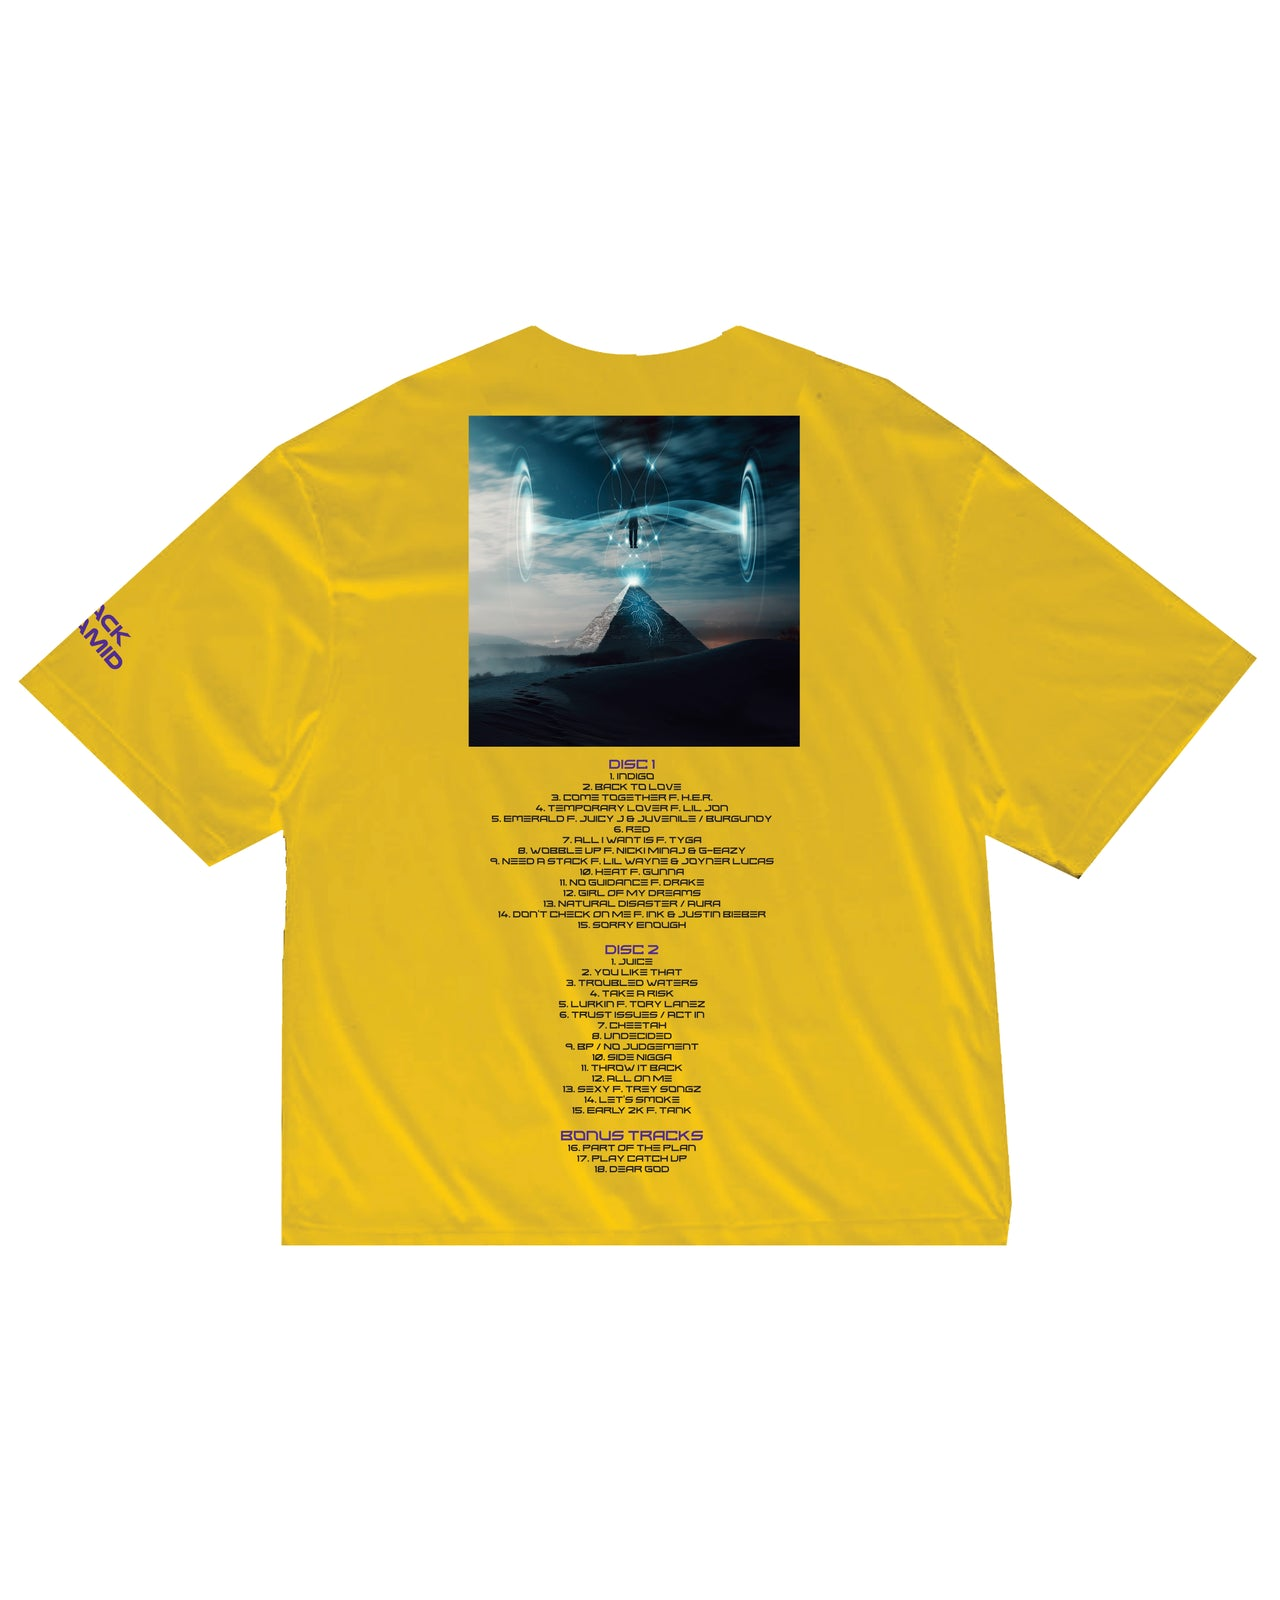 INDIGO BOX COVER SHIRT AND DIGITAL ALBUM-COLOR: YELLOW